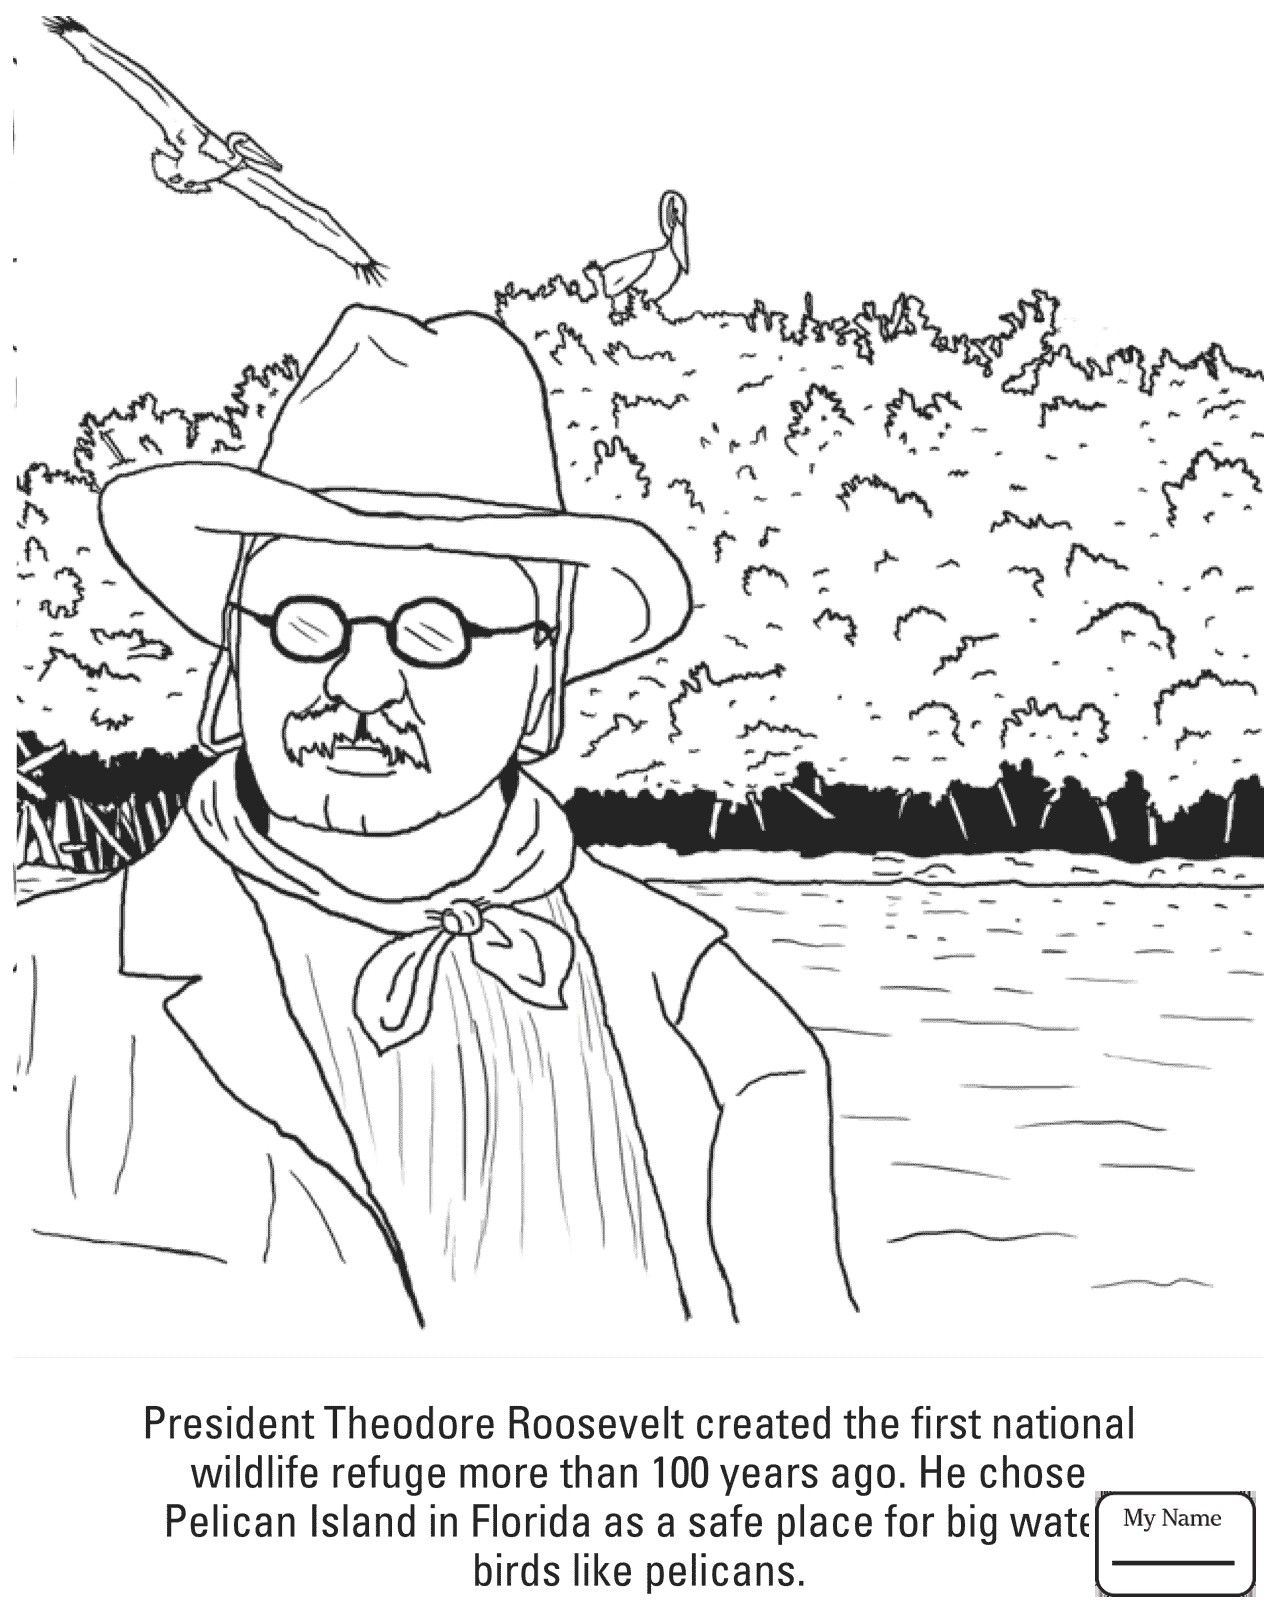 Teddy Roosevelt Coloring Pages Download Coloring Pages Coloring For Kids Teddy Roosevelt